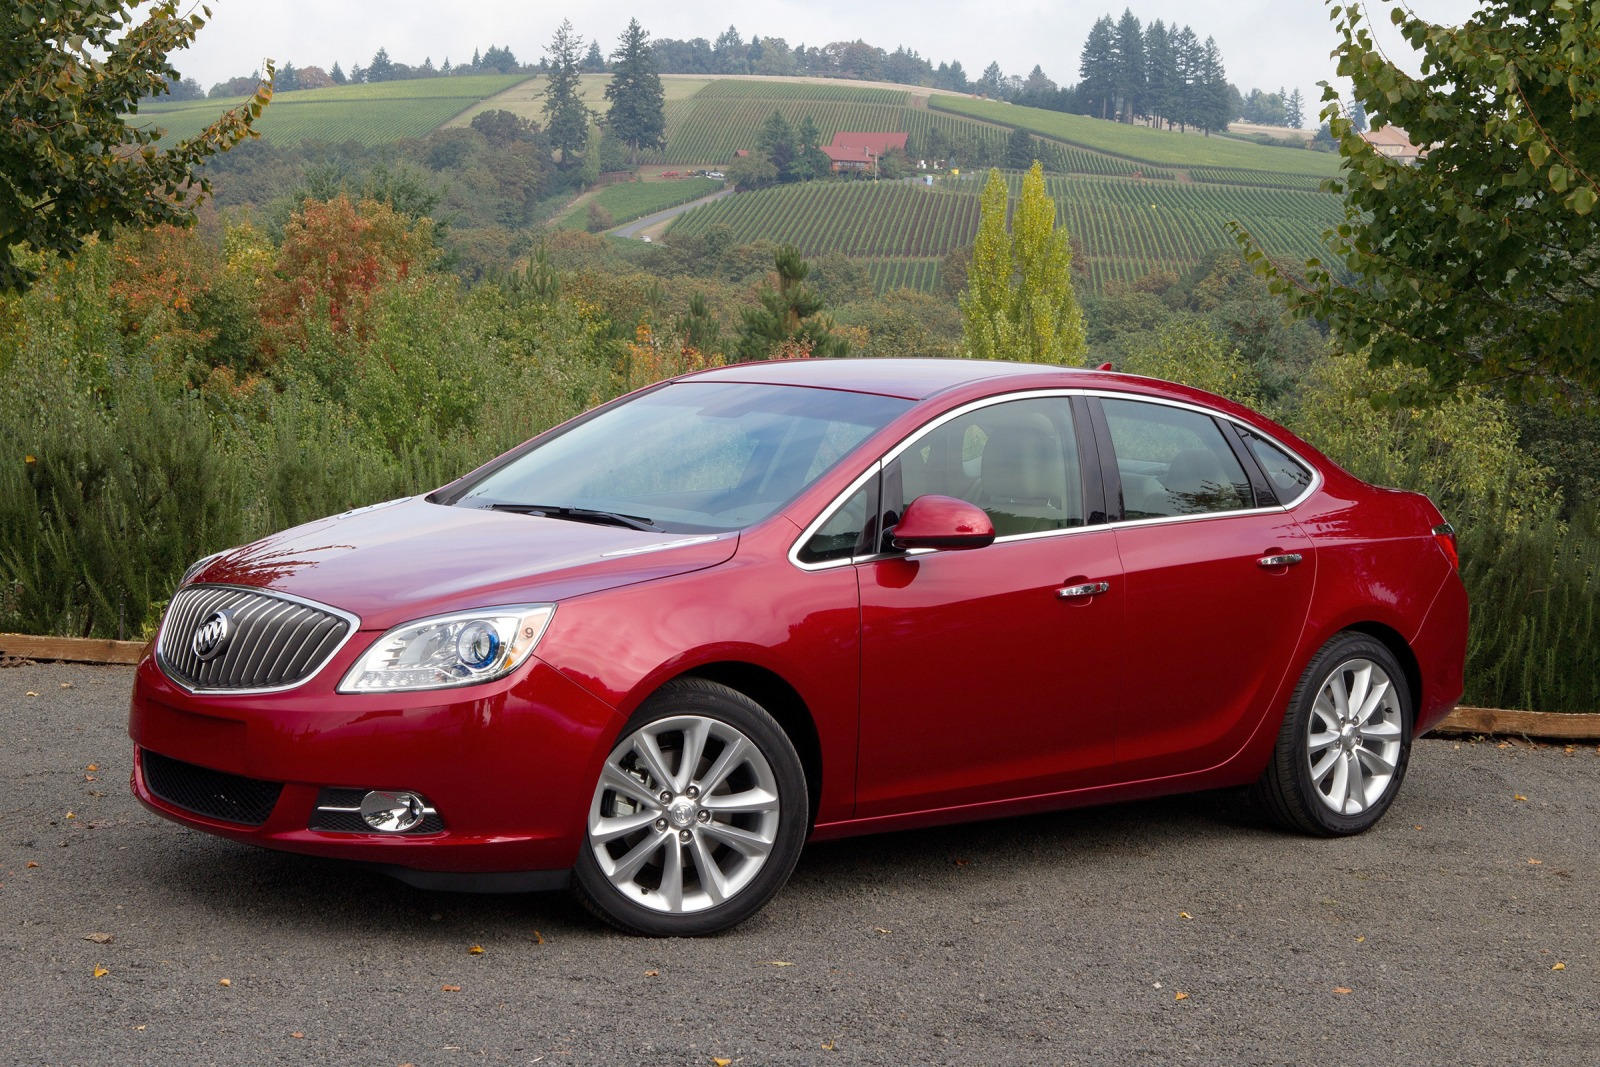 2018 Buick Verano Review, Trims, Specs And Price